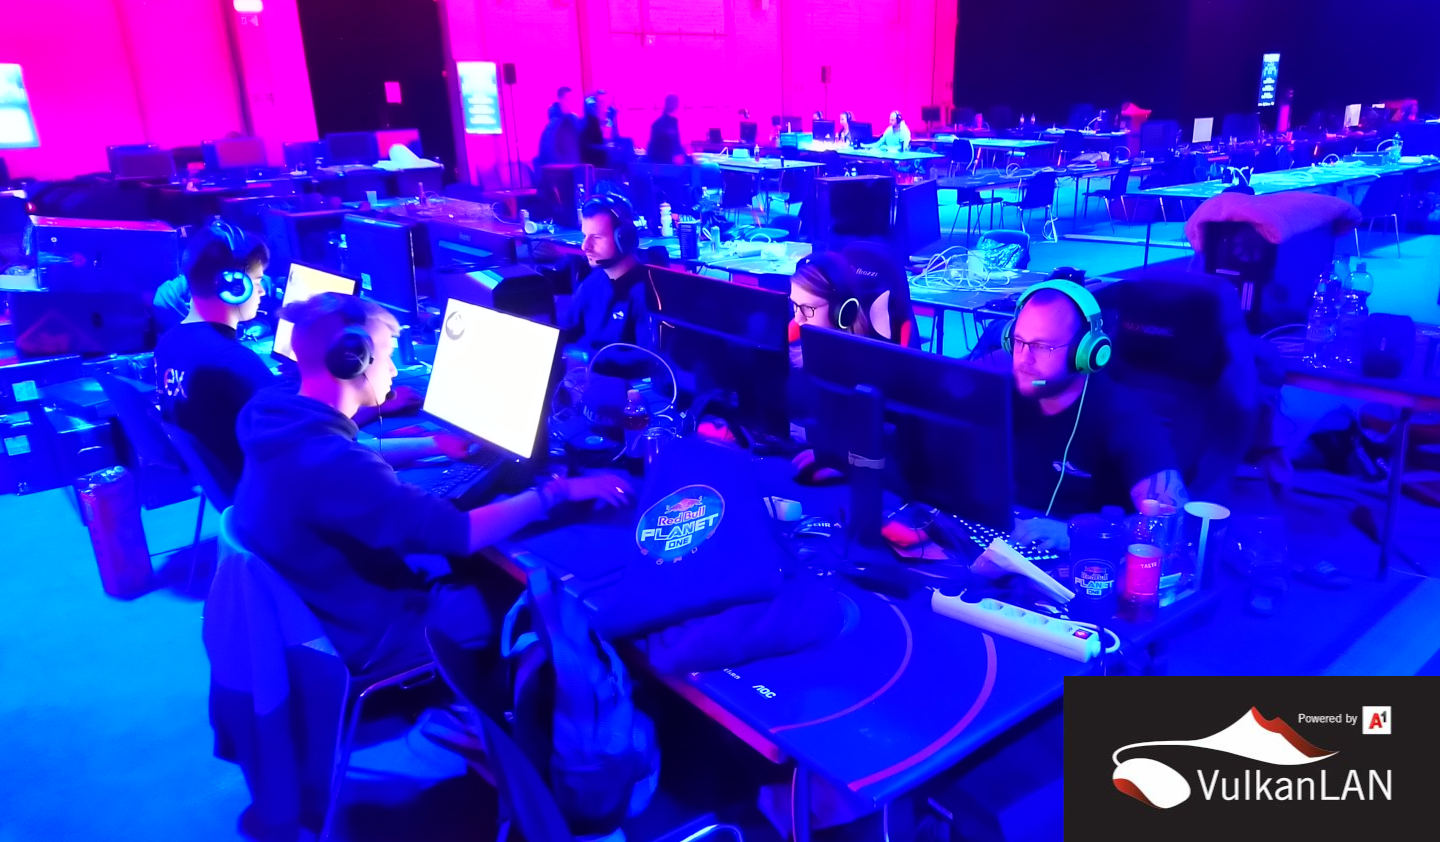 pLANet one lan area